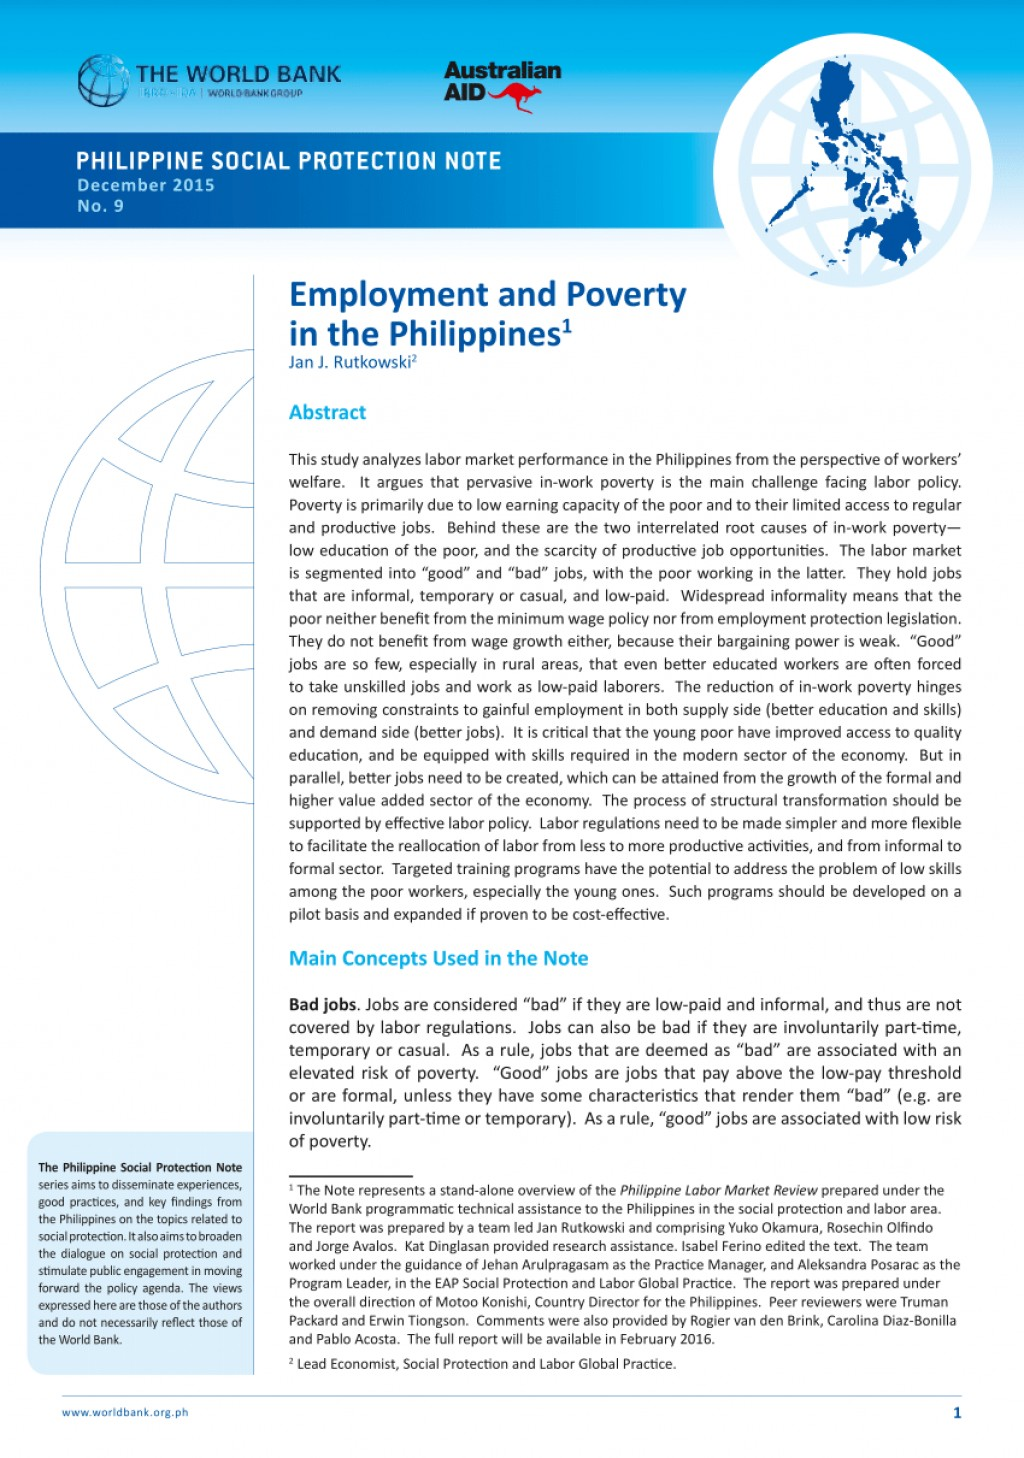 006 Research Paper Largepreview Poverty In The Philippines Impressive Pdf Large